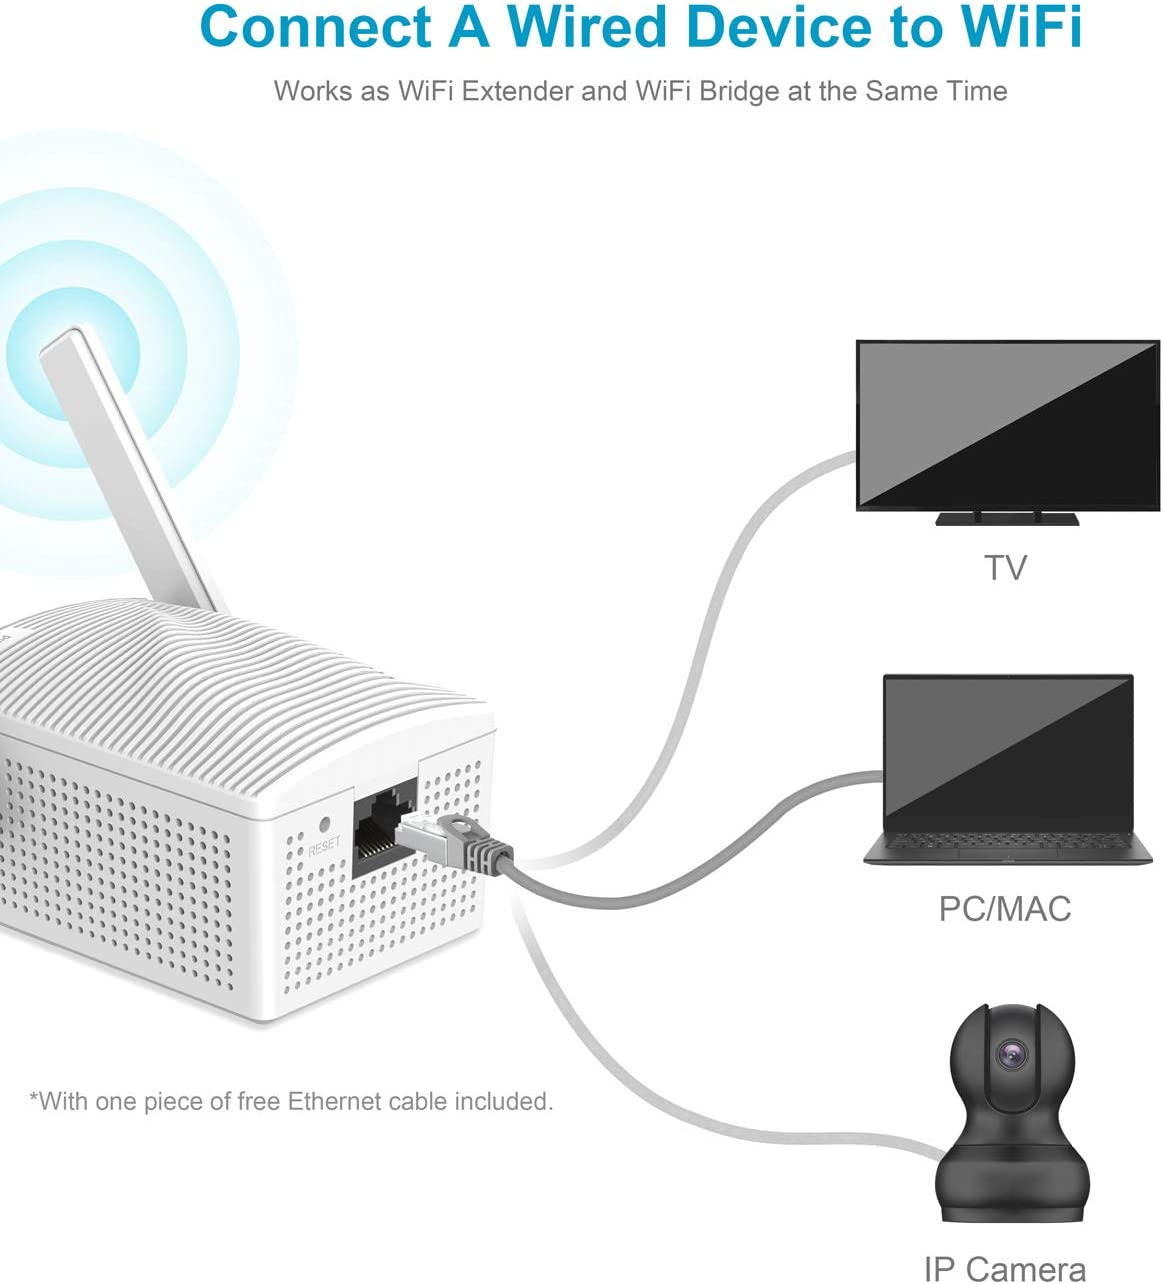 BrosTrend 1200Mbps WiFi Range Extender Signal Booster Repeater, Add Coverage up to 1200 sq.ft. in Your House, Extend 2.4GHz & 5GHz Wi-Fi, Easy Setup: Computers & Accessories